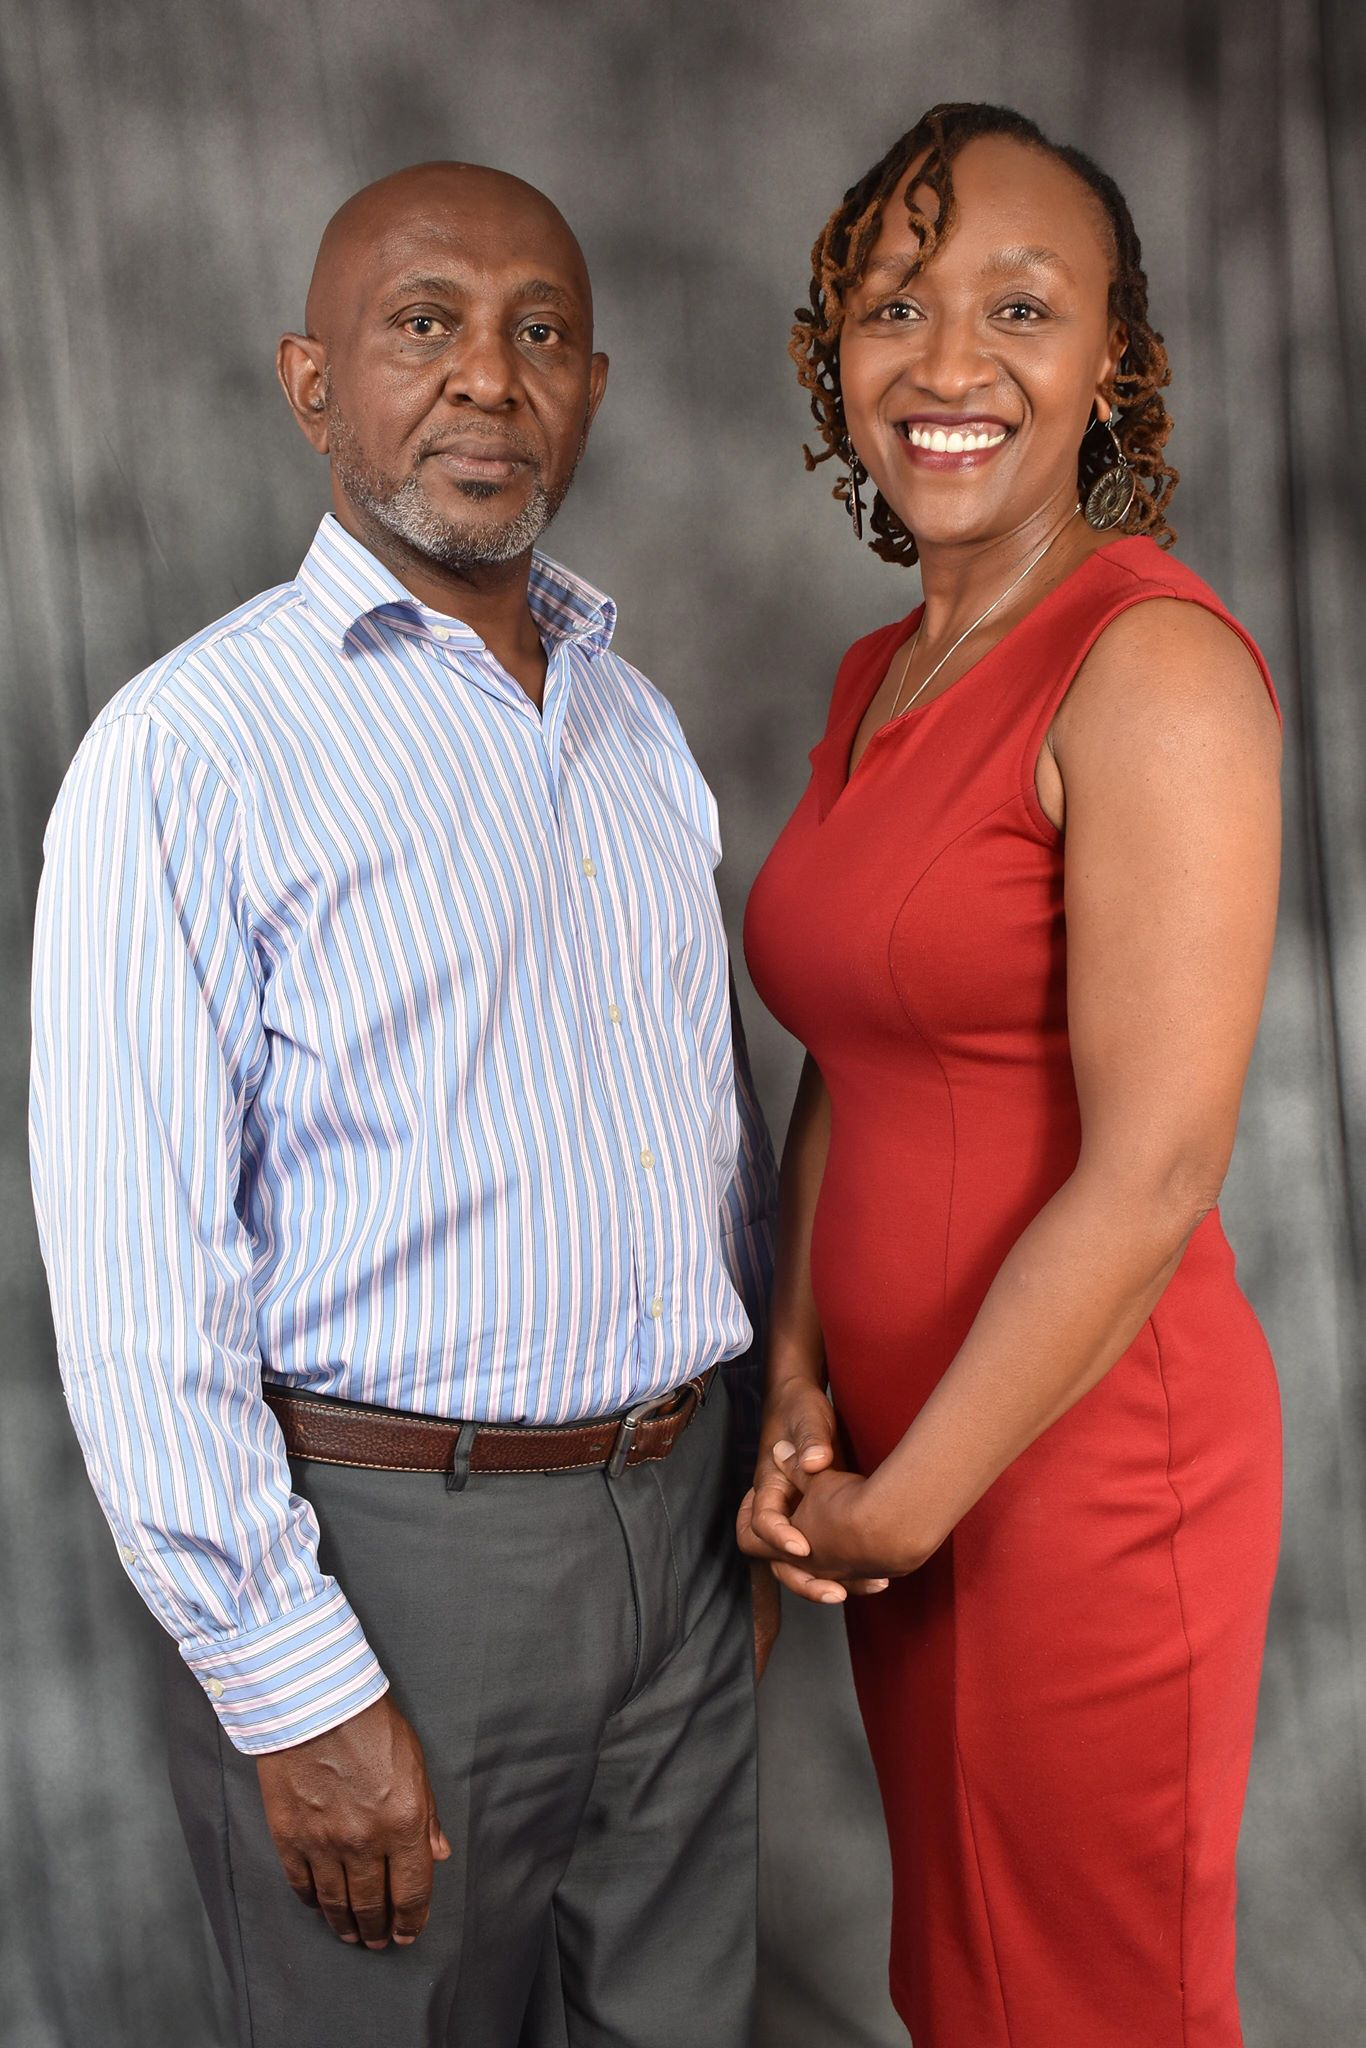   CAXTON & LIZ MBURU  KENYA - The Mburus are working towards a vision of raising up biblically sound pastors in the African nation of Kenya. To do so, they have created a gospel-centered curriculum and mentorship program to train Kenyan pastors and to plant churches within their communities.For More Information: CLICK ME